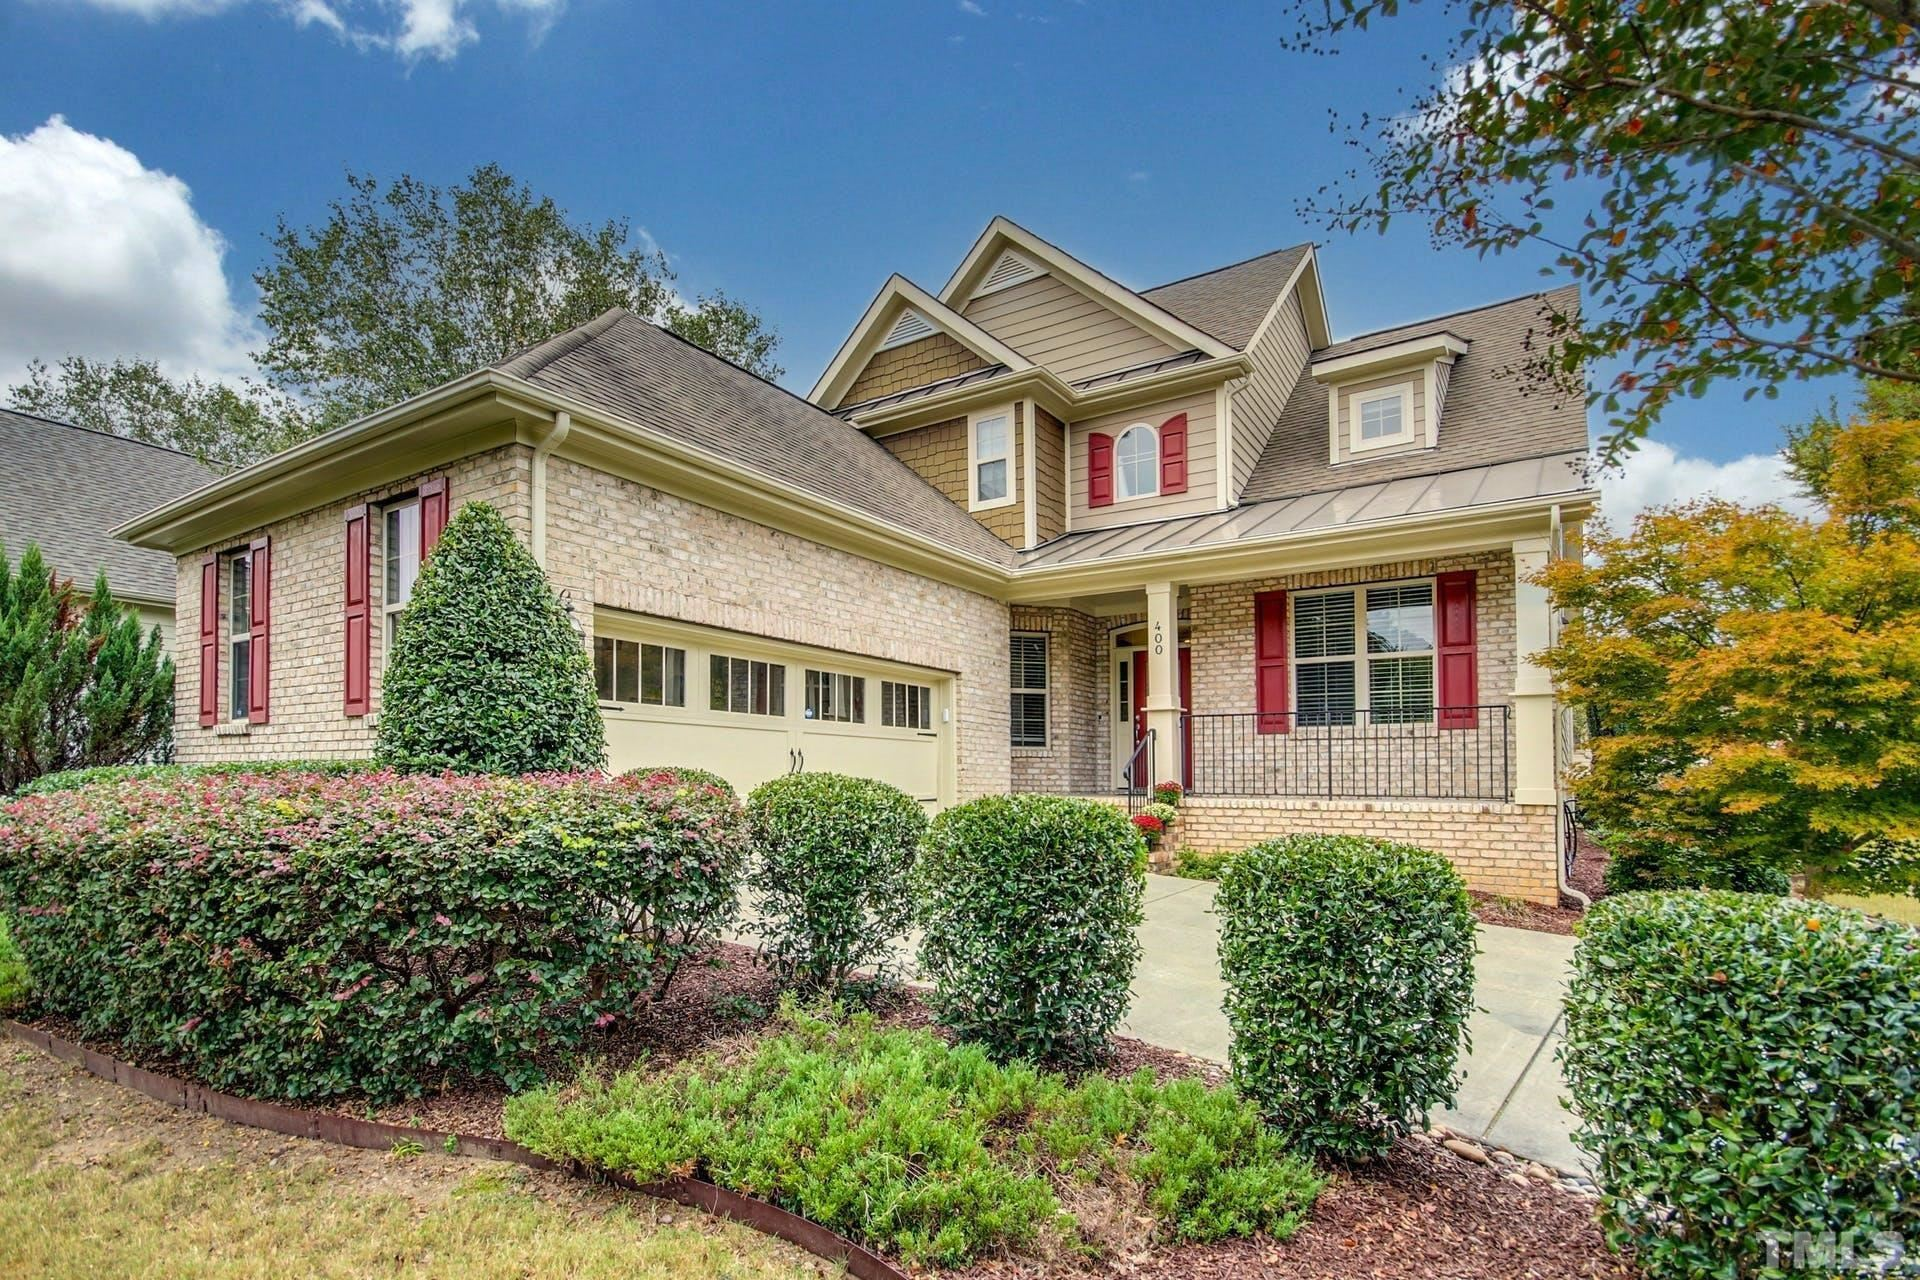 Photo of 400 Dimock Way, Wake Forest, NC 27587 (MLS # 2415786)